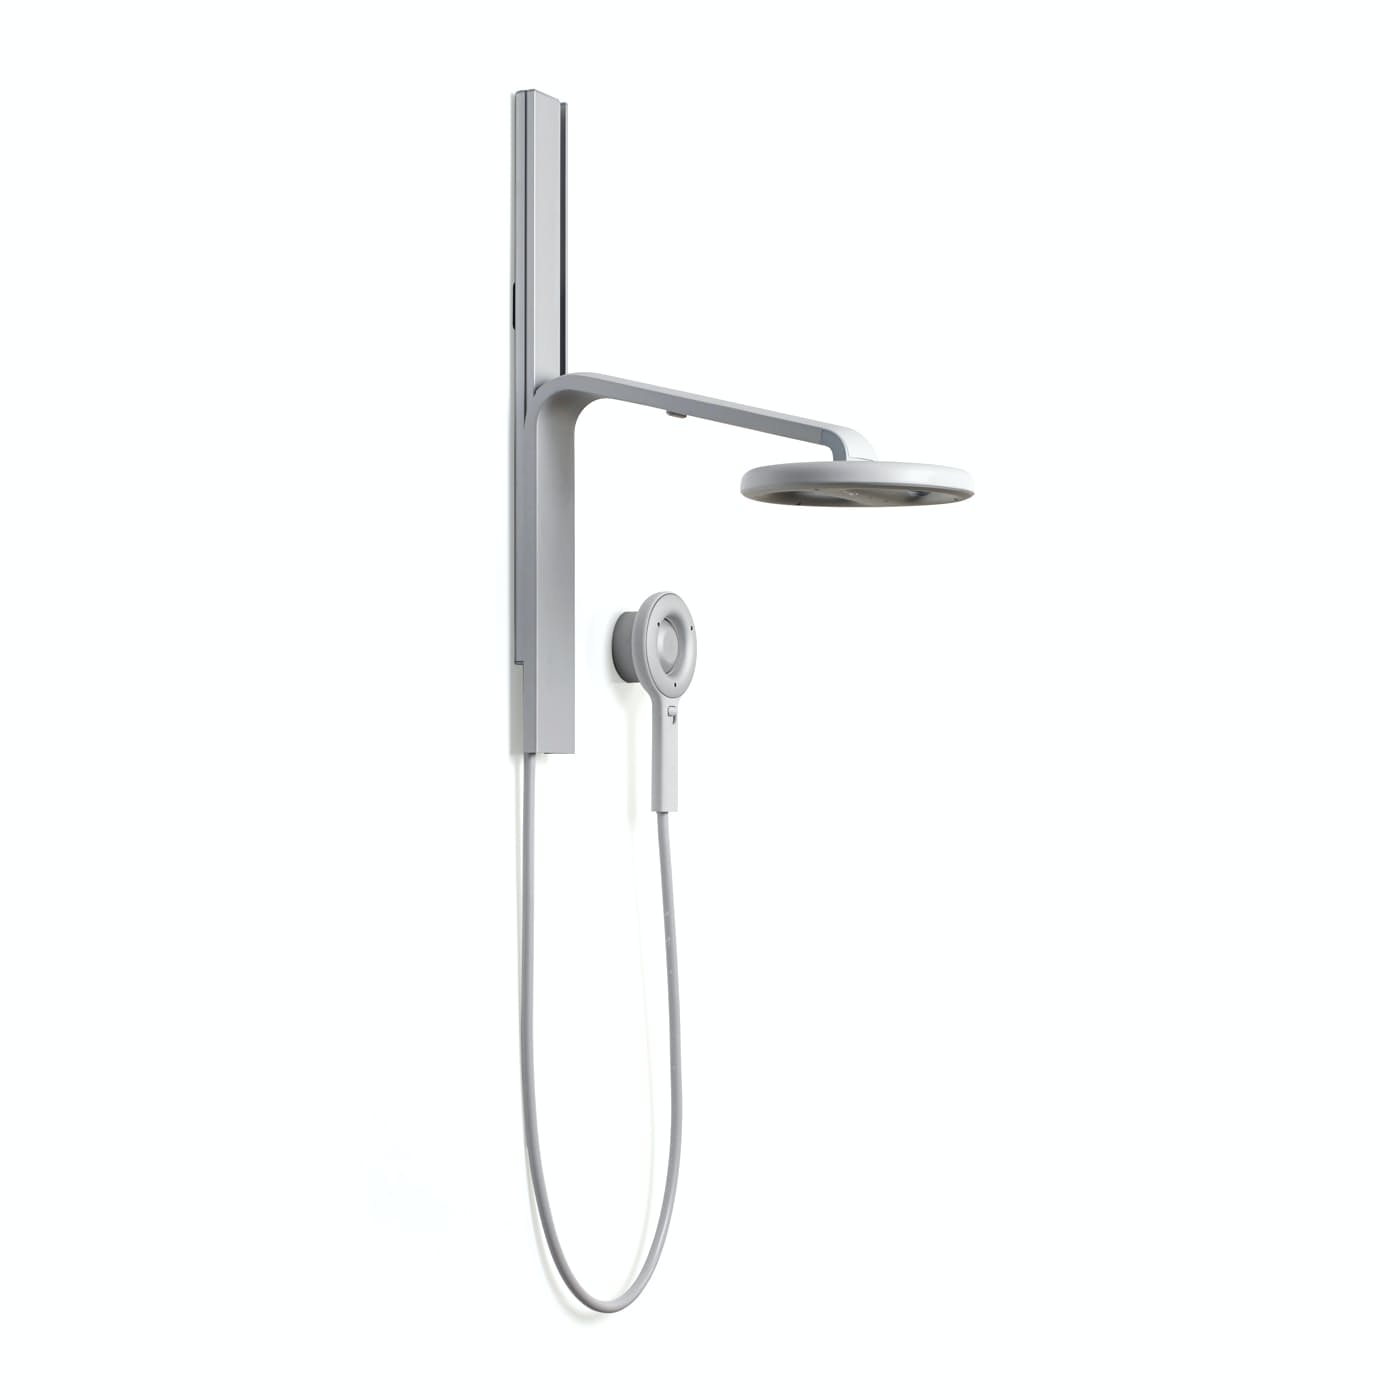 Qyjv1zmsyj nebia nebia spa shower 0 original